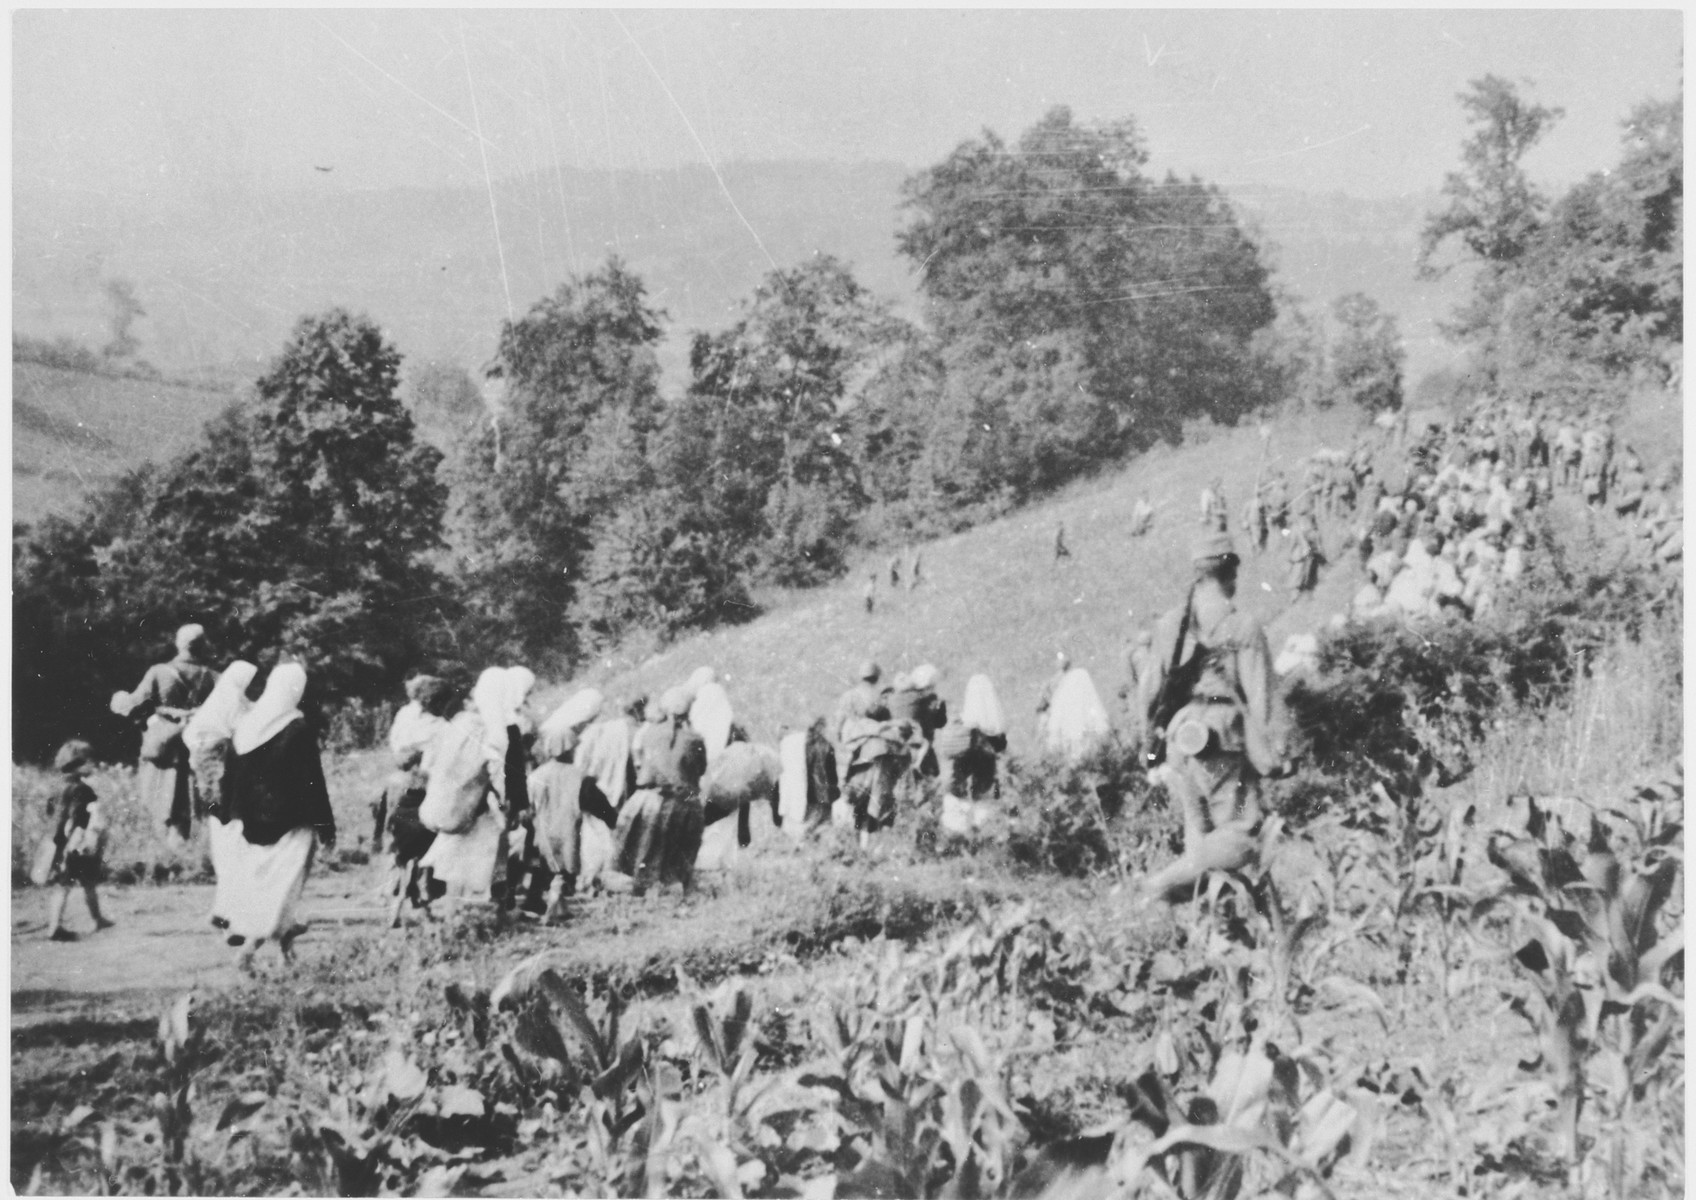 [Probably Serbian women and children from the Kozara region who have been rounded-up for deportation, marching through a field.]